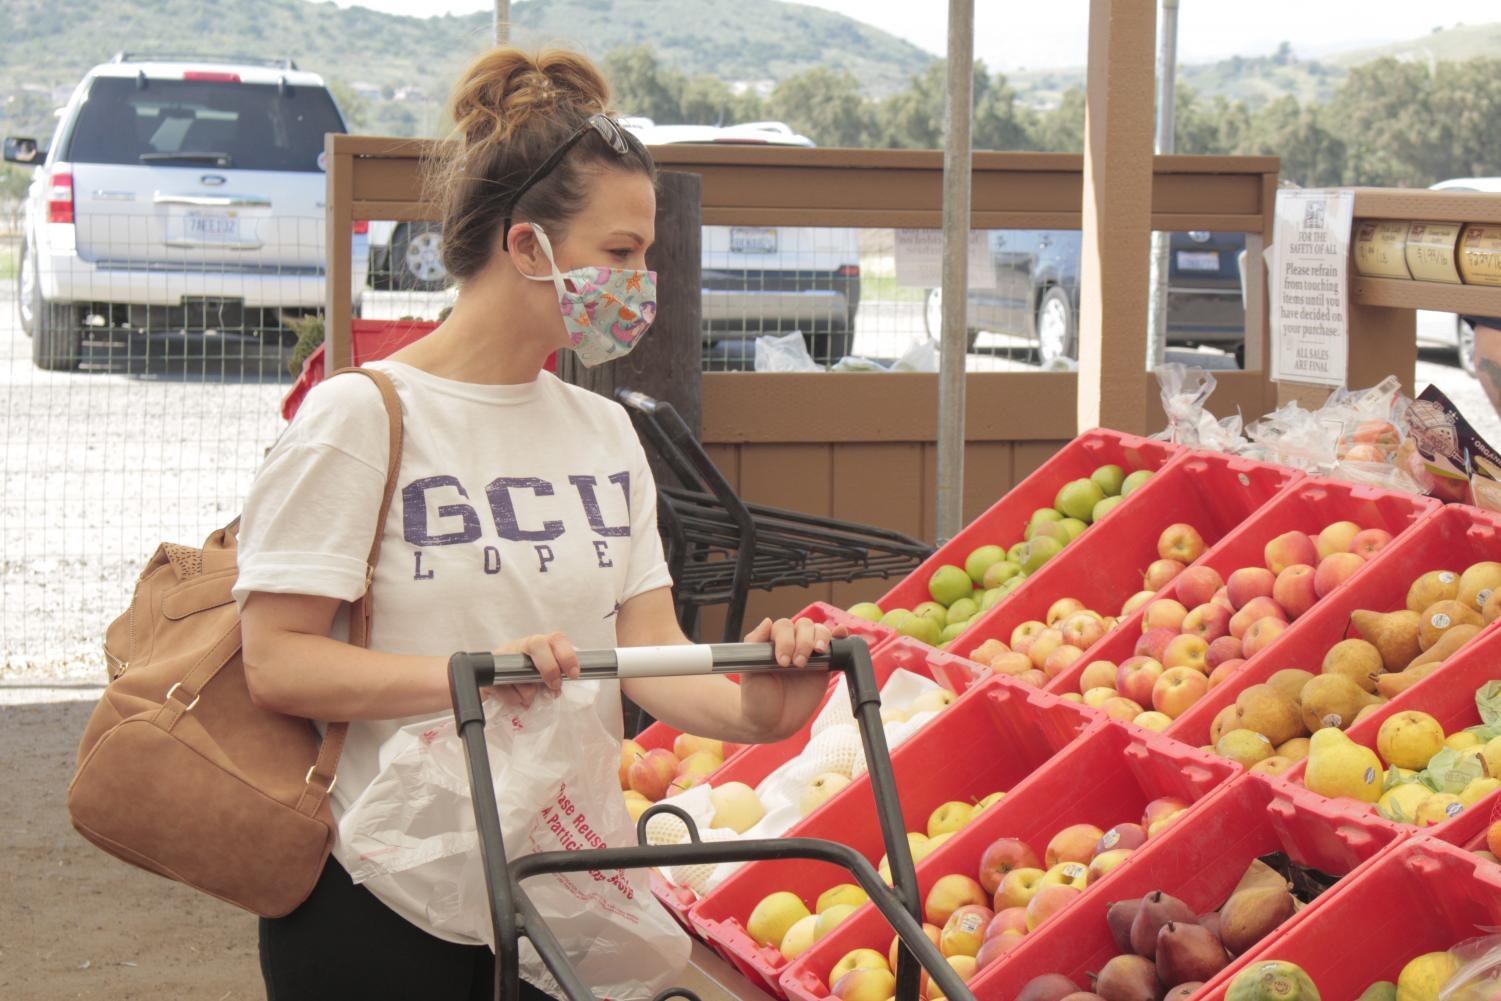 Megan Harper from Moorpark shops for produce at Underwood Farms in Moorpark on April 28, 2020.